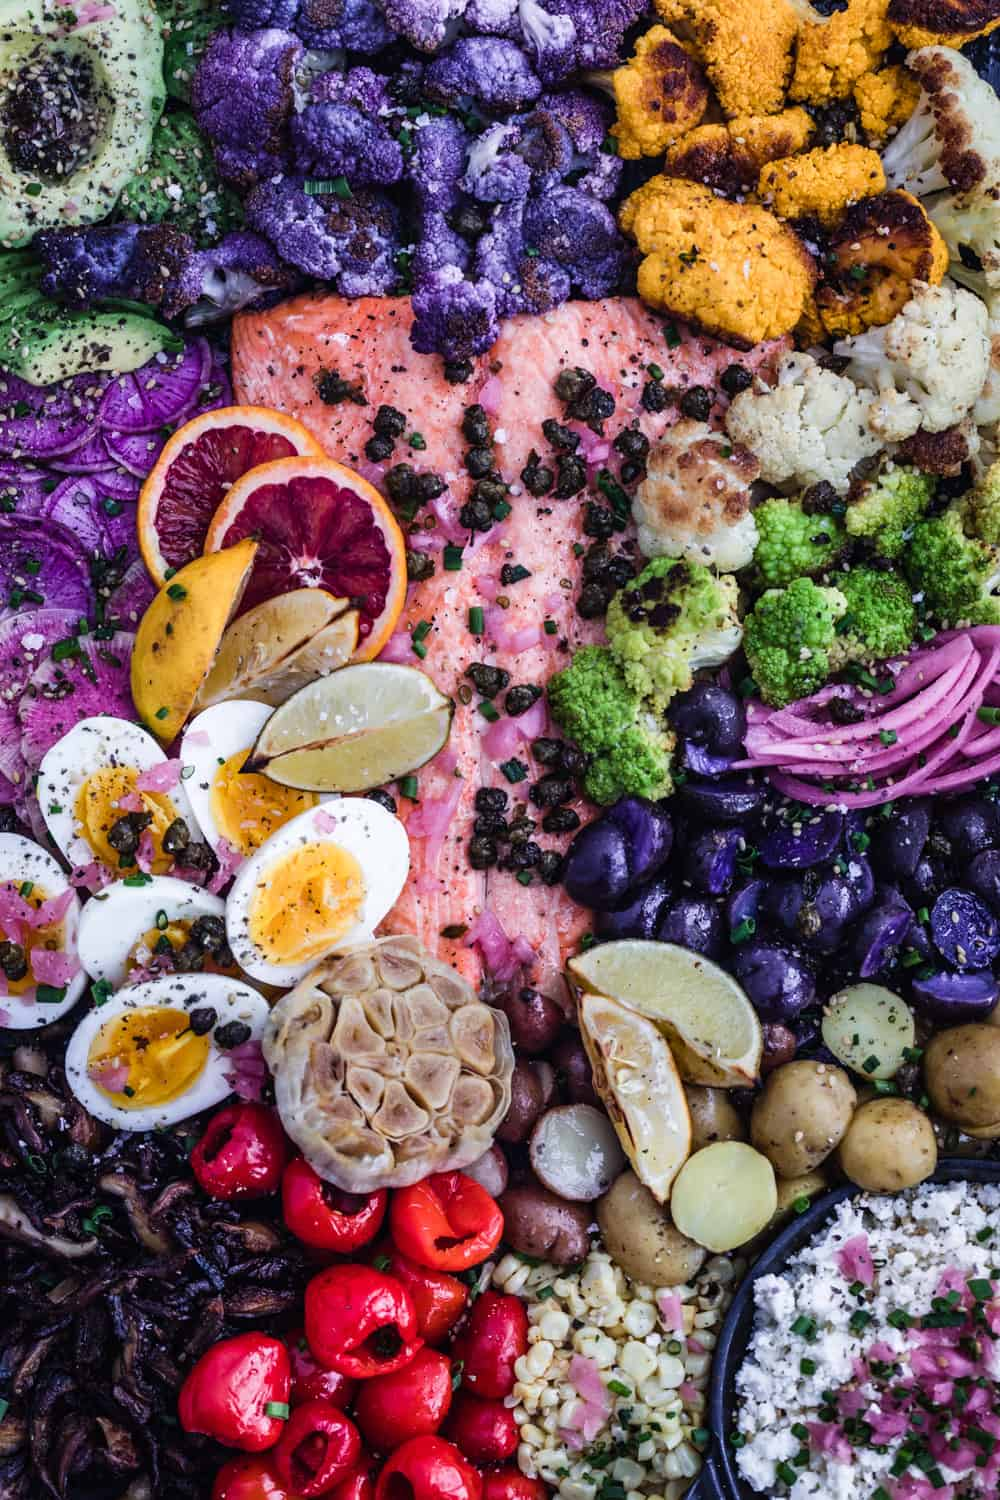 Salmon Rainbow Party Salad Board with avocado, purple, white, green and yellow cauliflower, pickled red onions, purple and white potatoes, corn, cheese, peppers, garlic, mushrooms, soft boiled eggs, ninja and watermelon radishes, blog oranges, lemons, limes, fried capers and shallots. Up close shot.